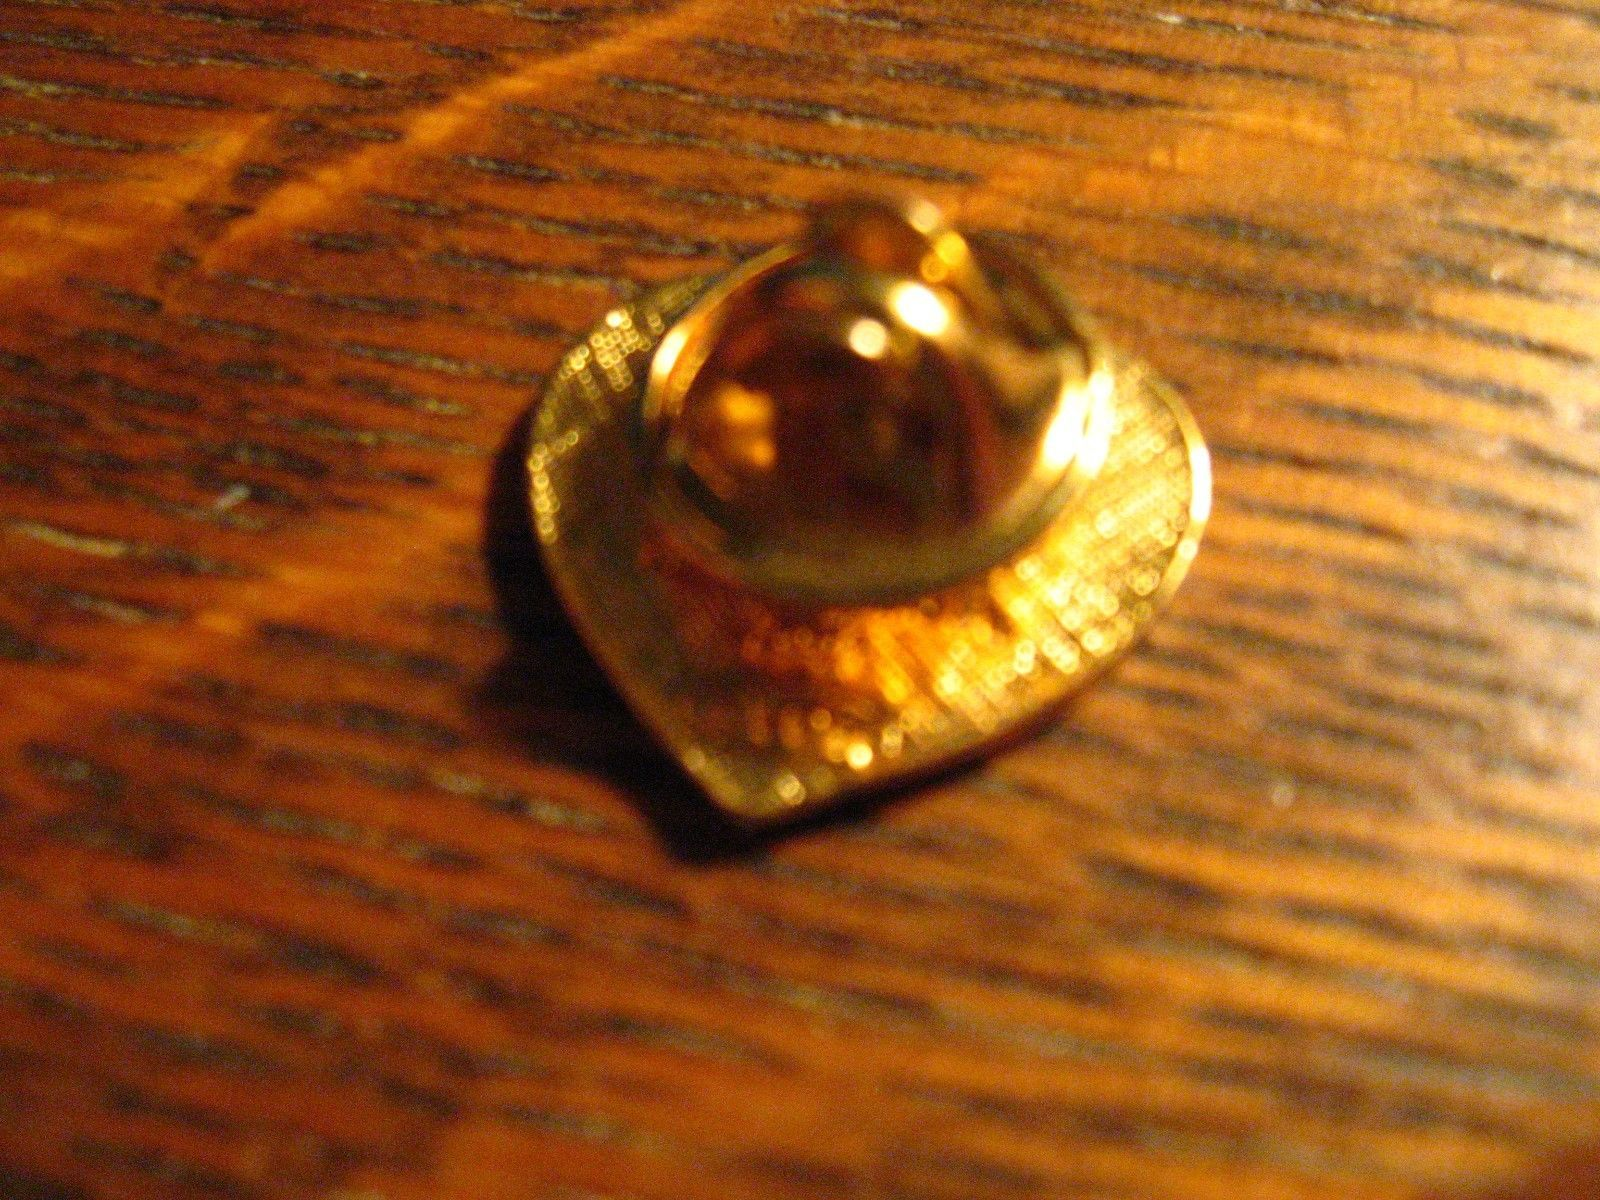 Avon Heart America Flag Lapel Pin - Vintage 2001 USA Valentine's Day Gold Brooch